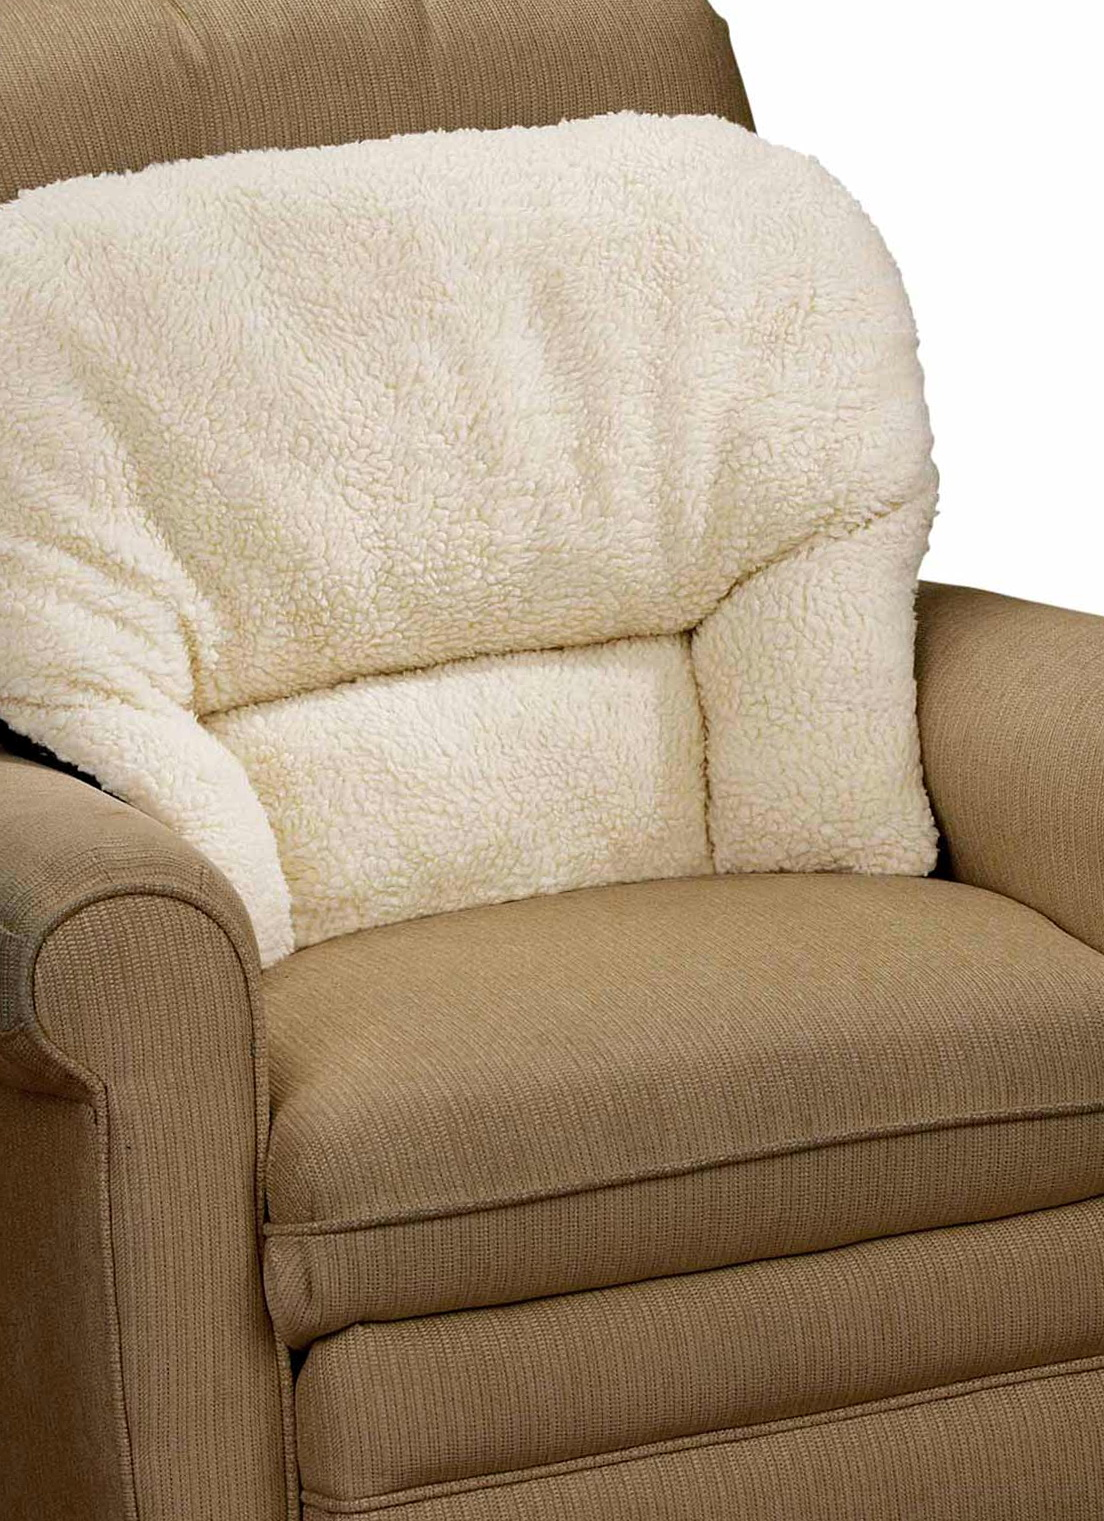 Back Support Cushion For Recliner Home Design Ideas